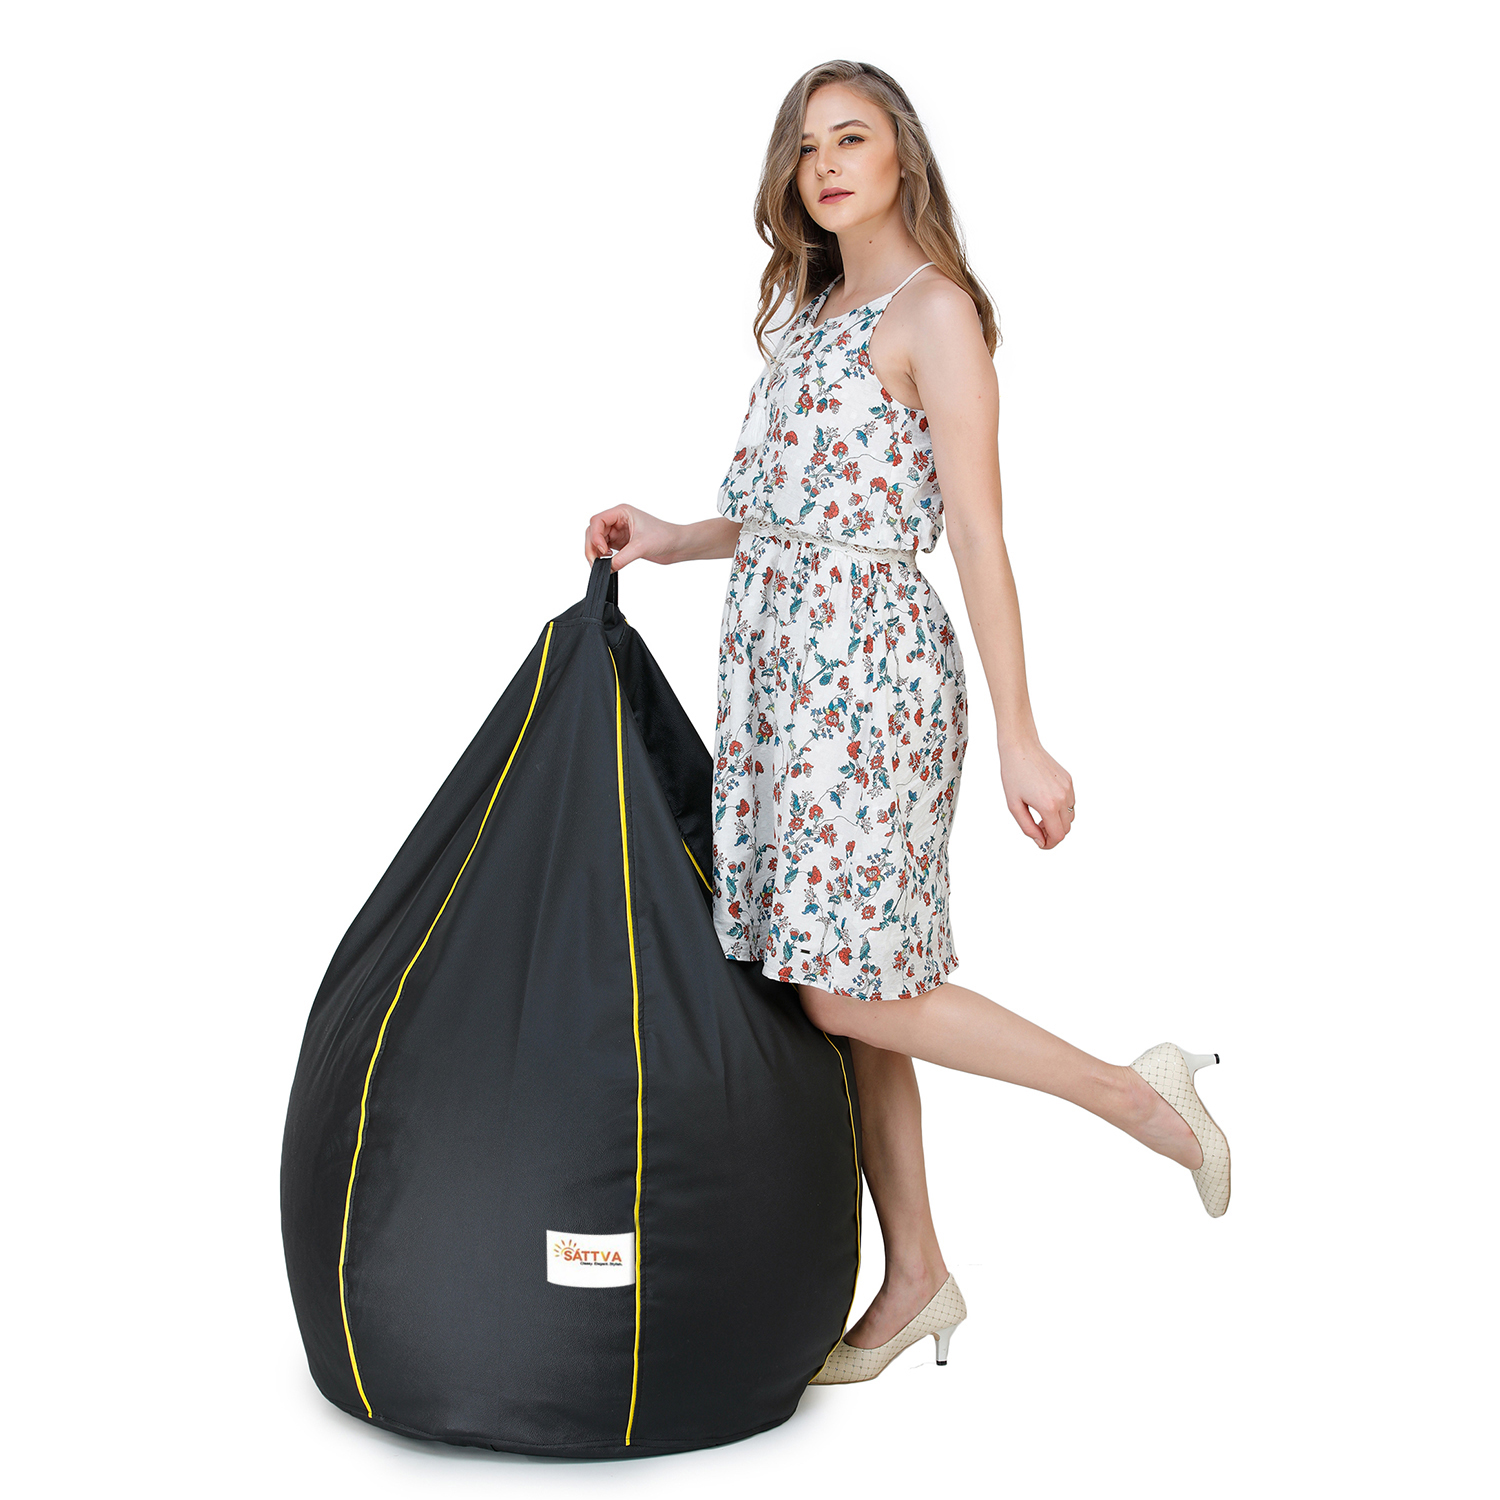 SATTVA Classy.Elegant.Stylish Classic XXL Bean Bag Filled With Beans - Black With Yellow Piping